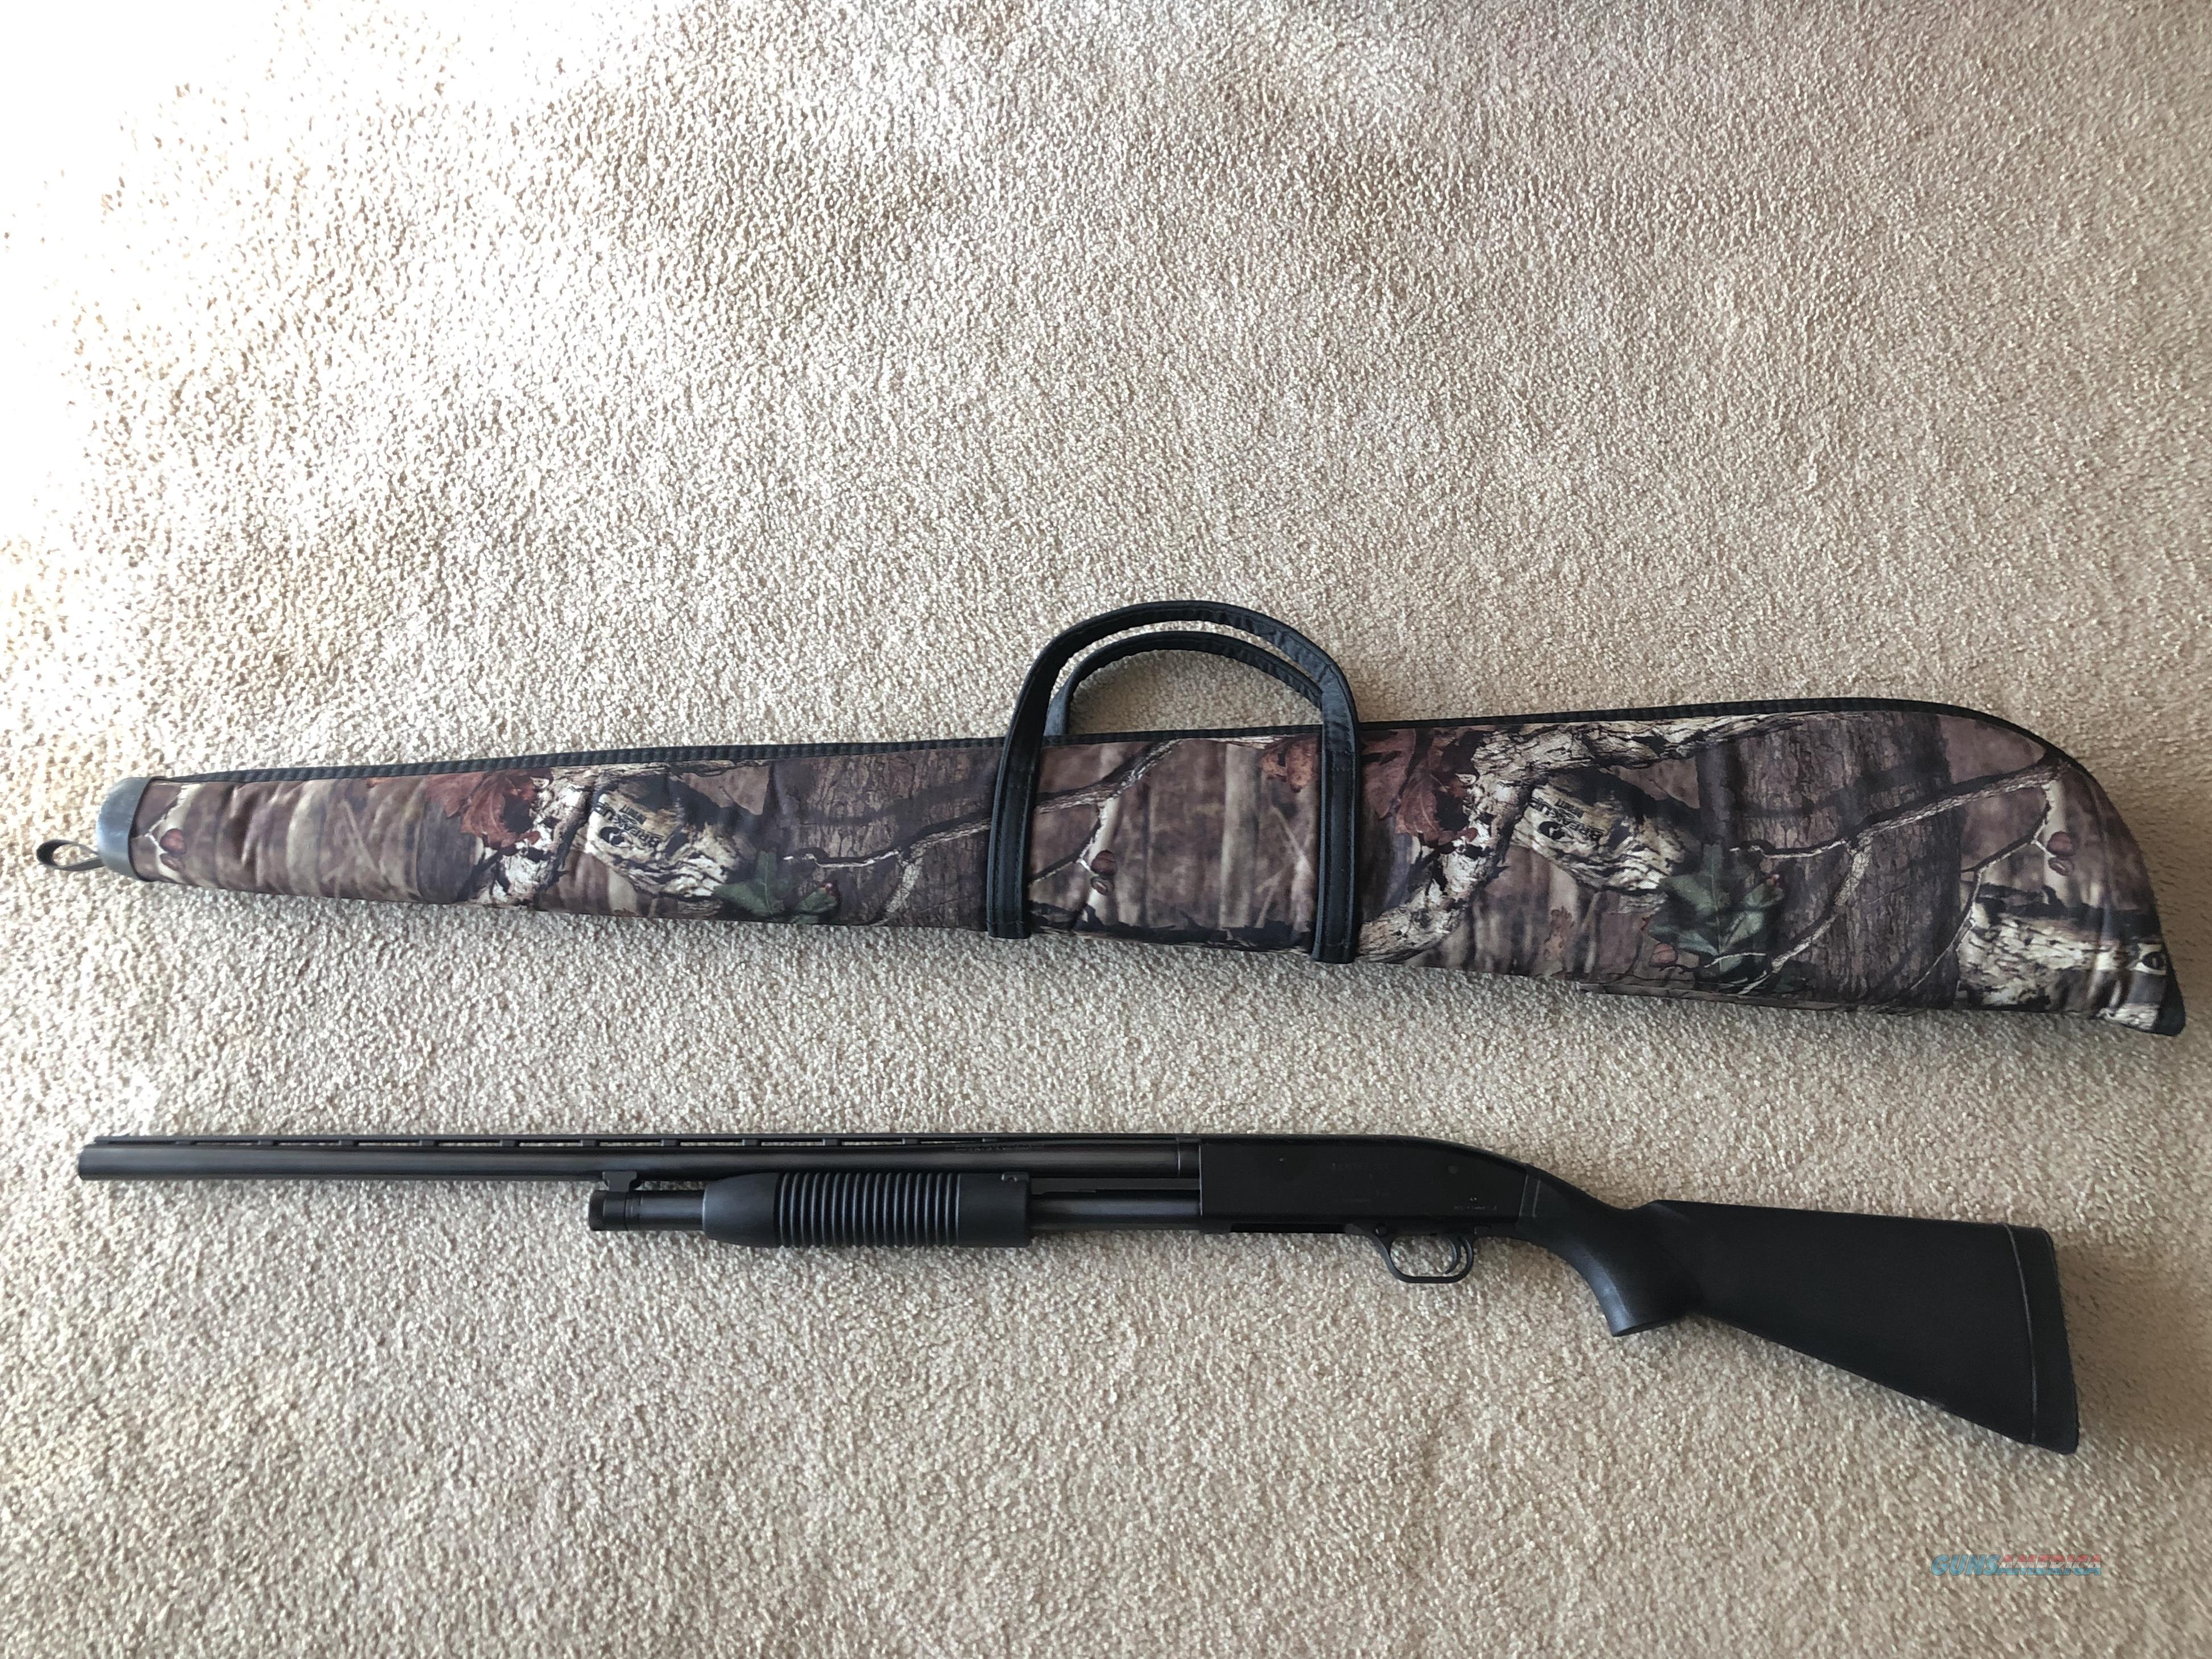 MAVERICK 88 (Mossberg) 12-Gauge pump-action Shotgun  Guns > Shotguns > Maverick Shotguns